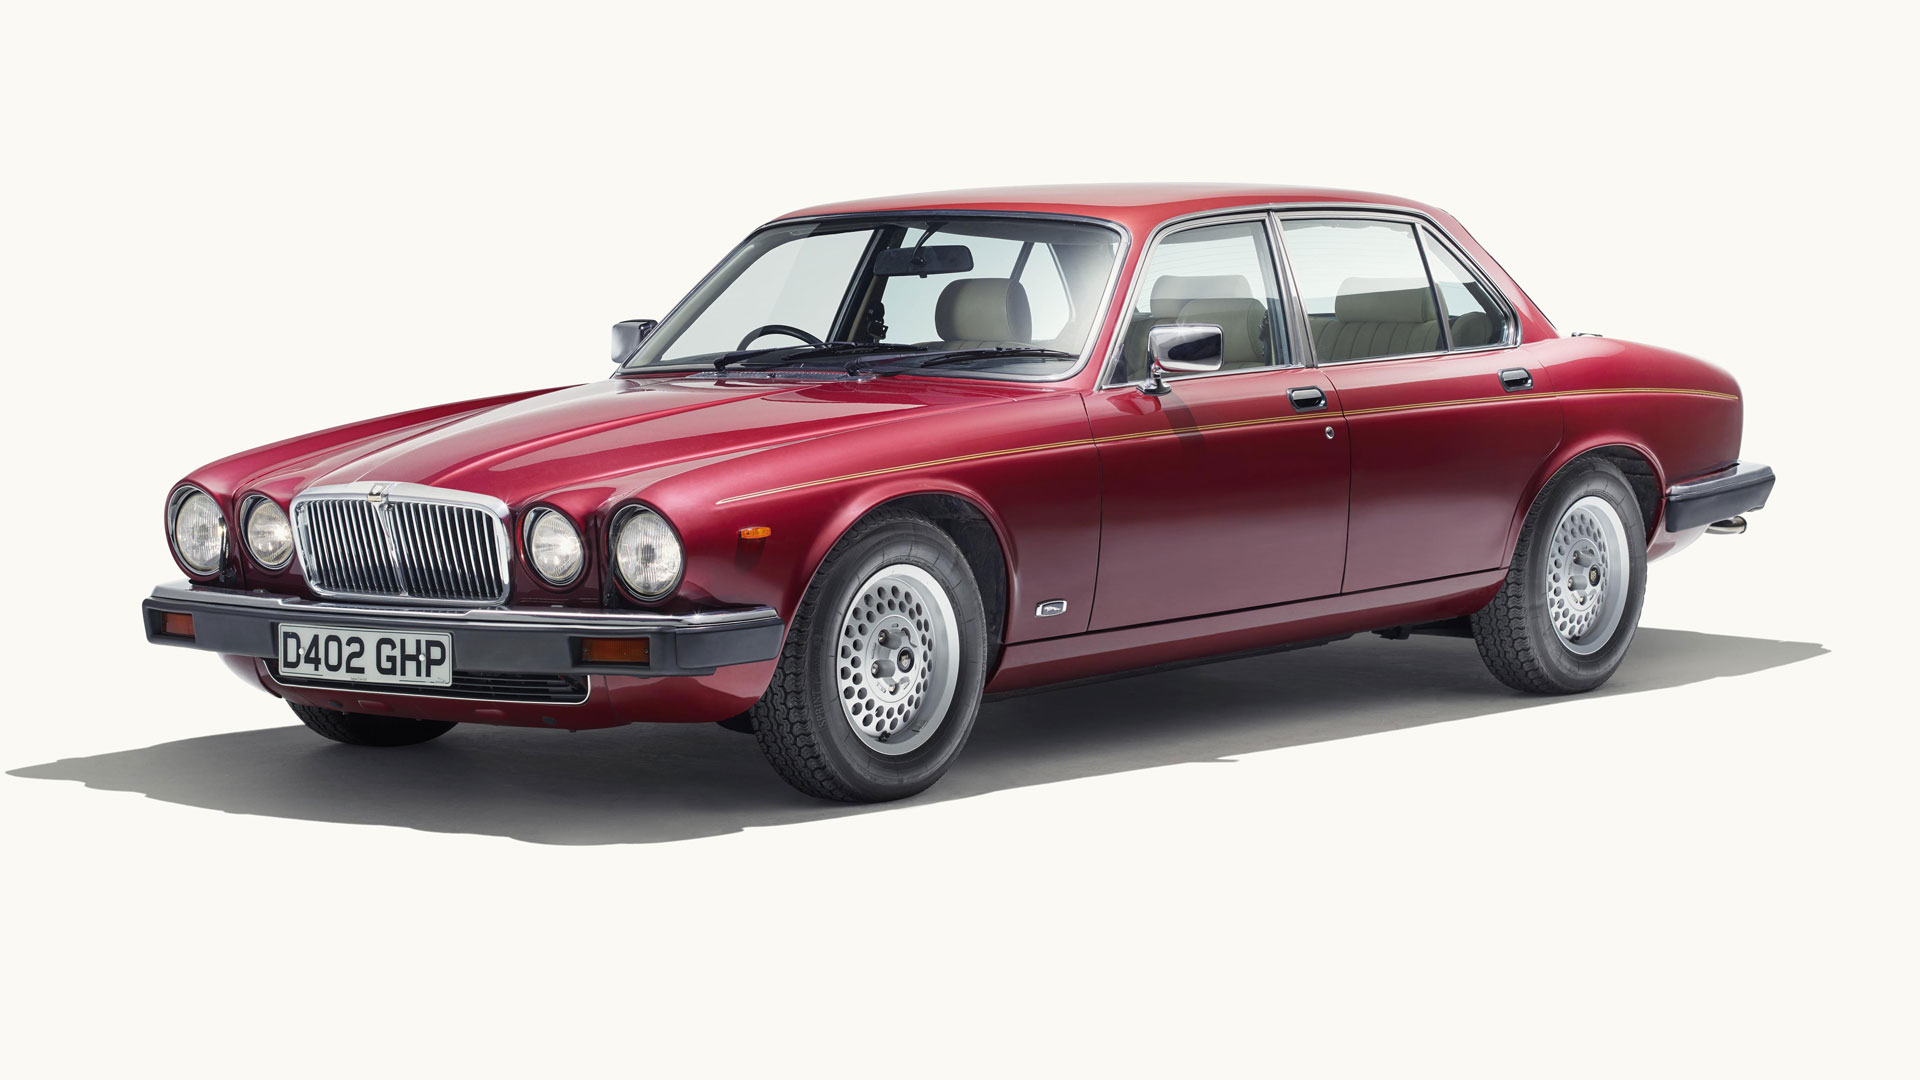 History of the Jaguar XJ